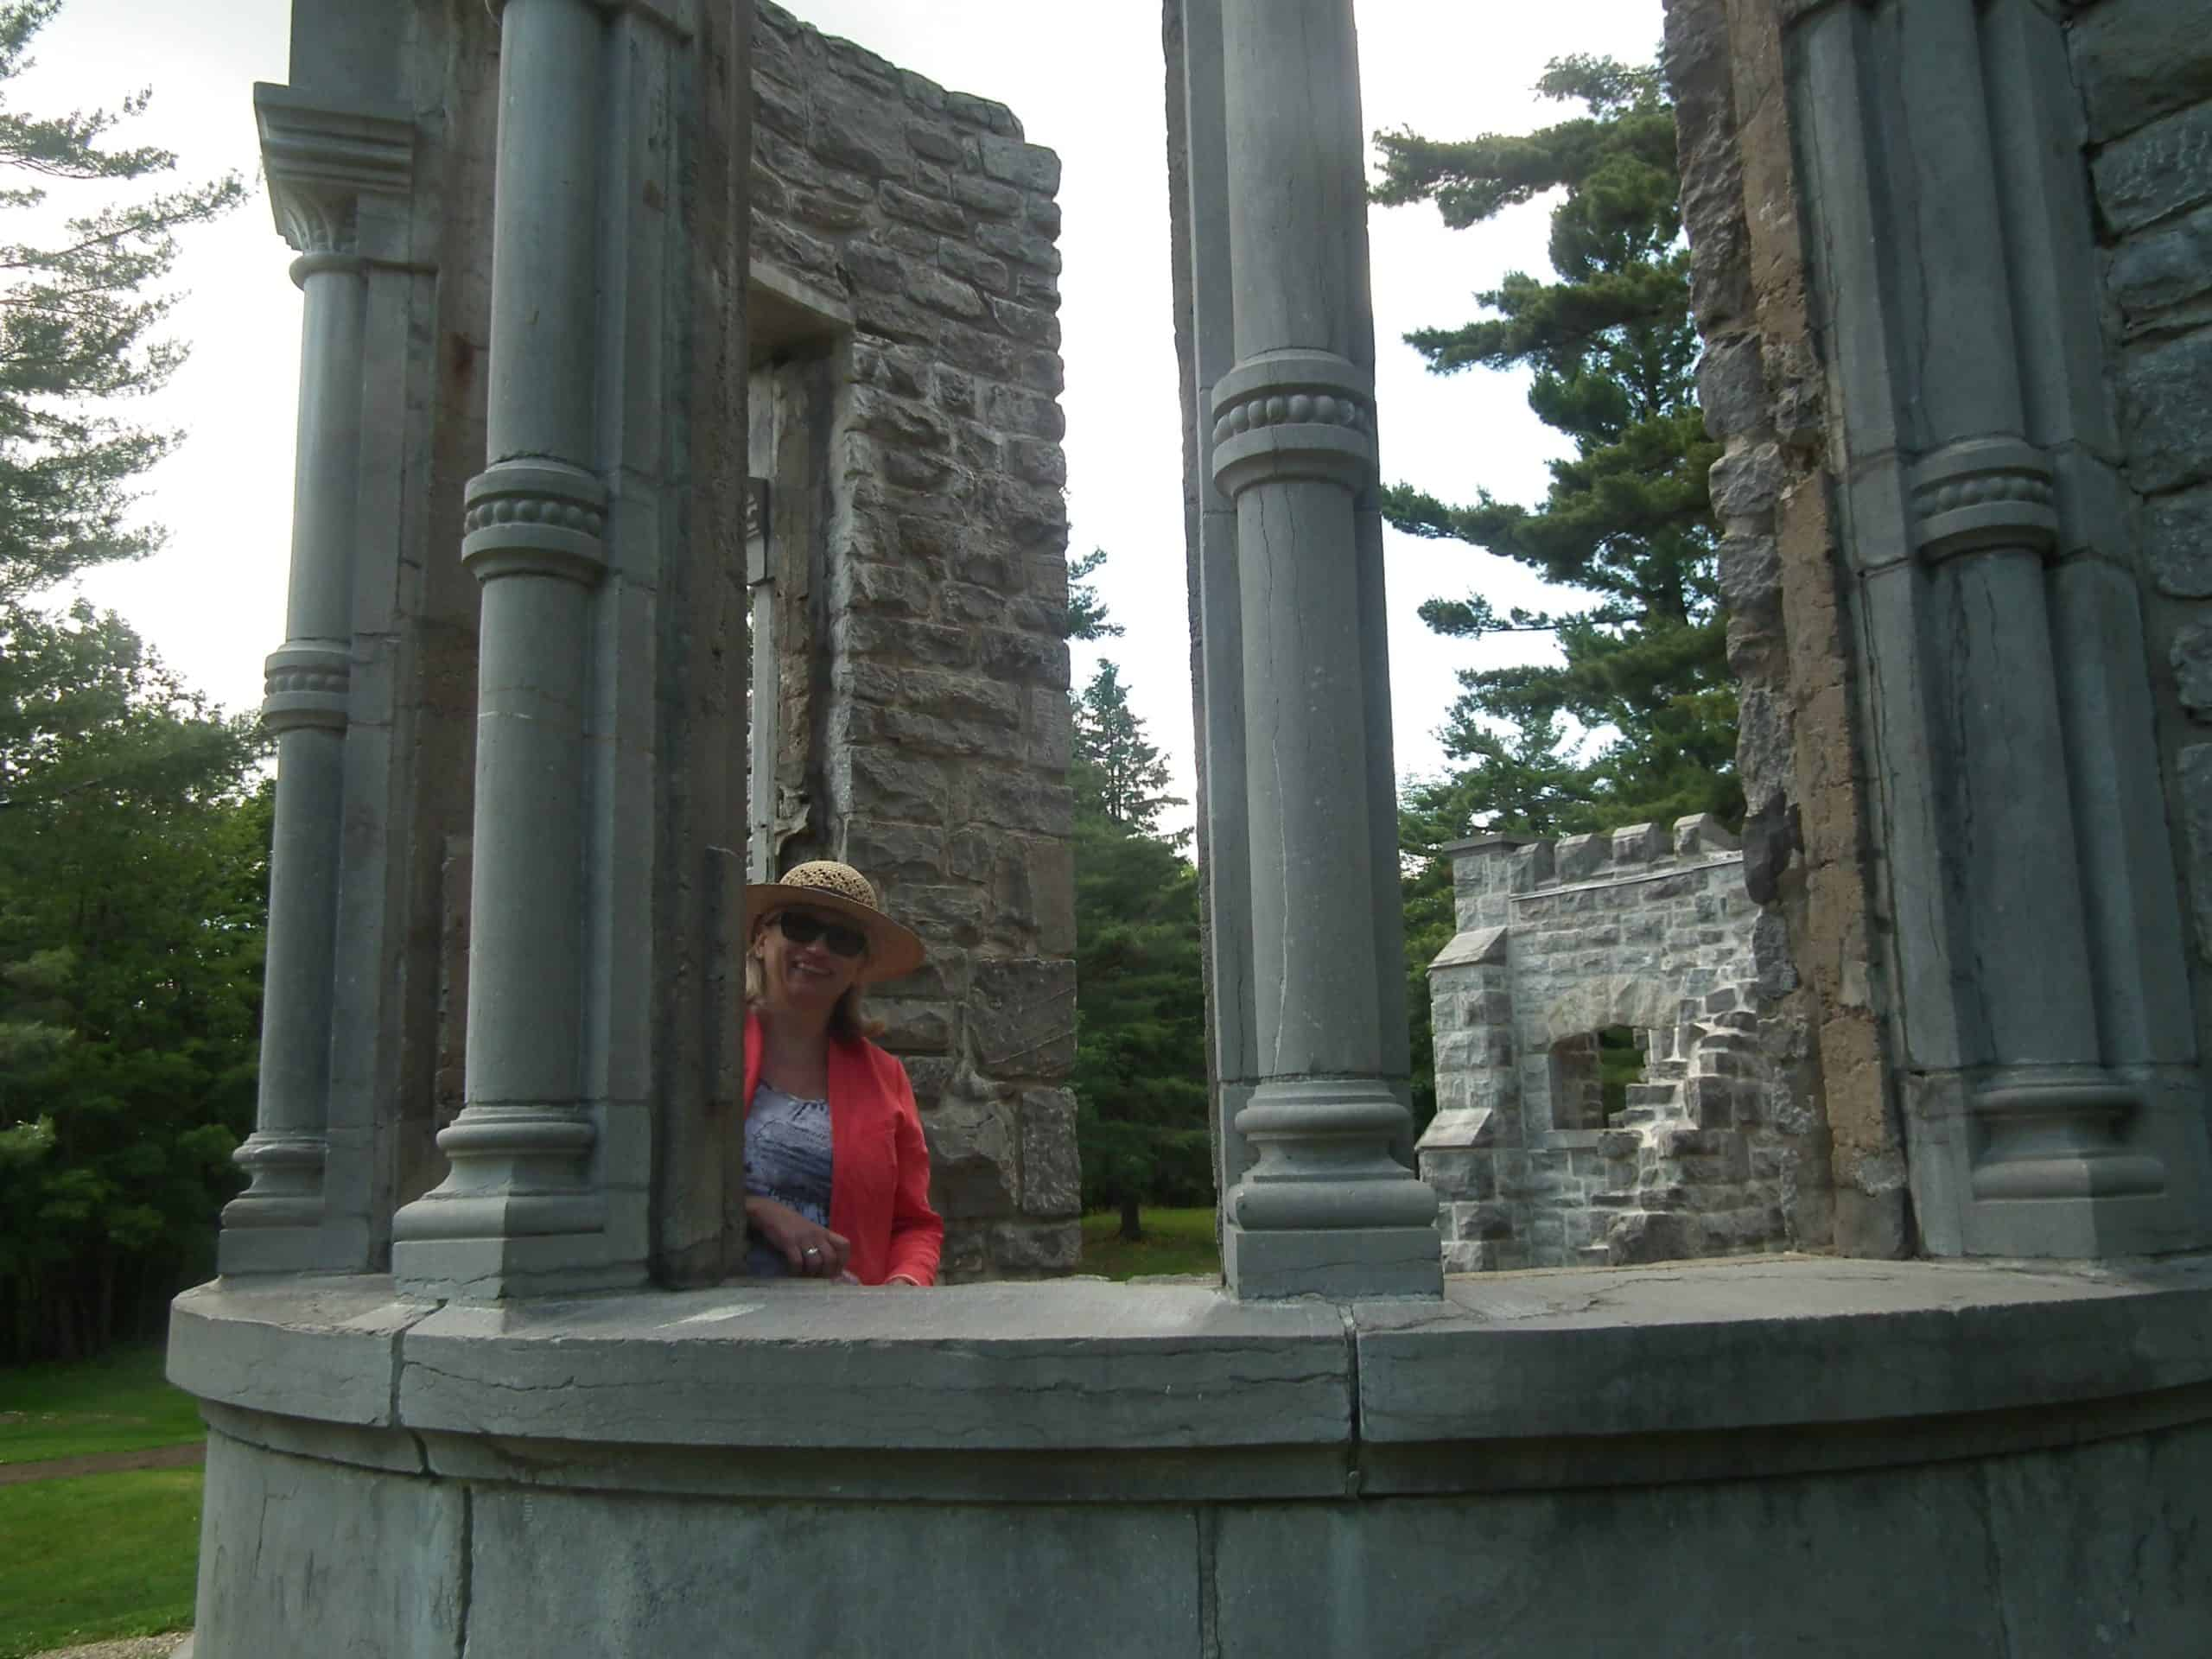 Landscape architect Dorota Grudniewicz demonstrates the view from the ruins, which is on an axis with Ottawa's Peace Tower.